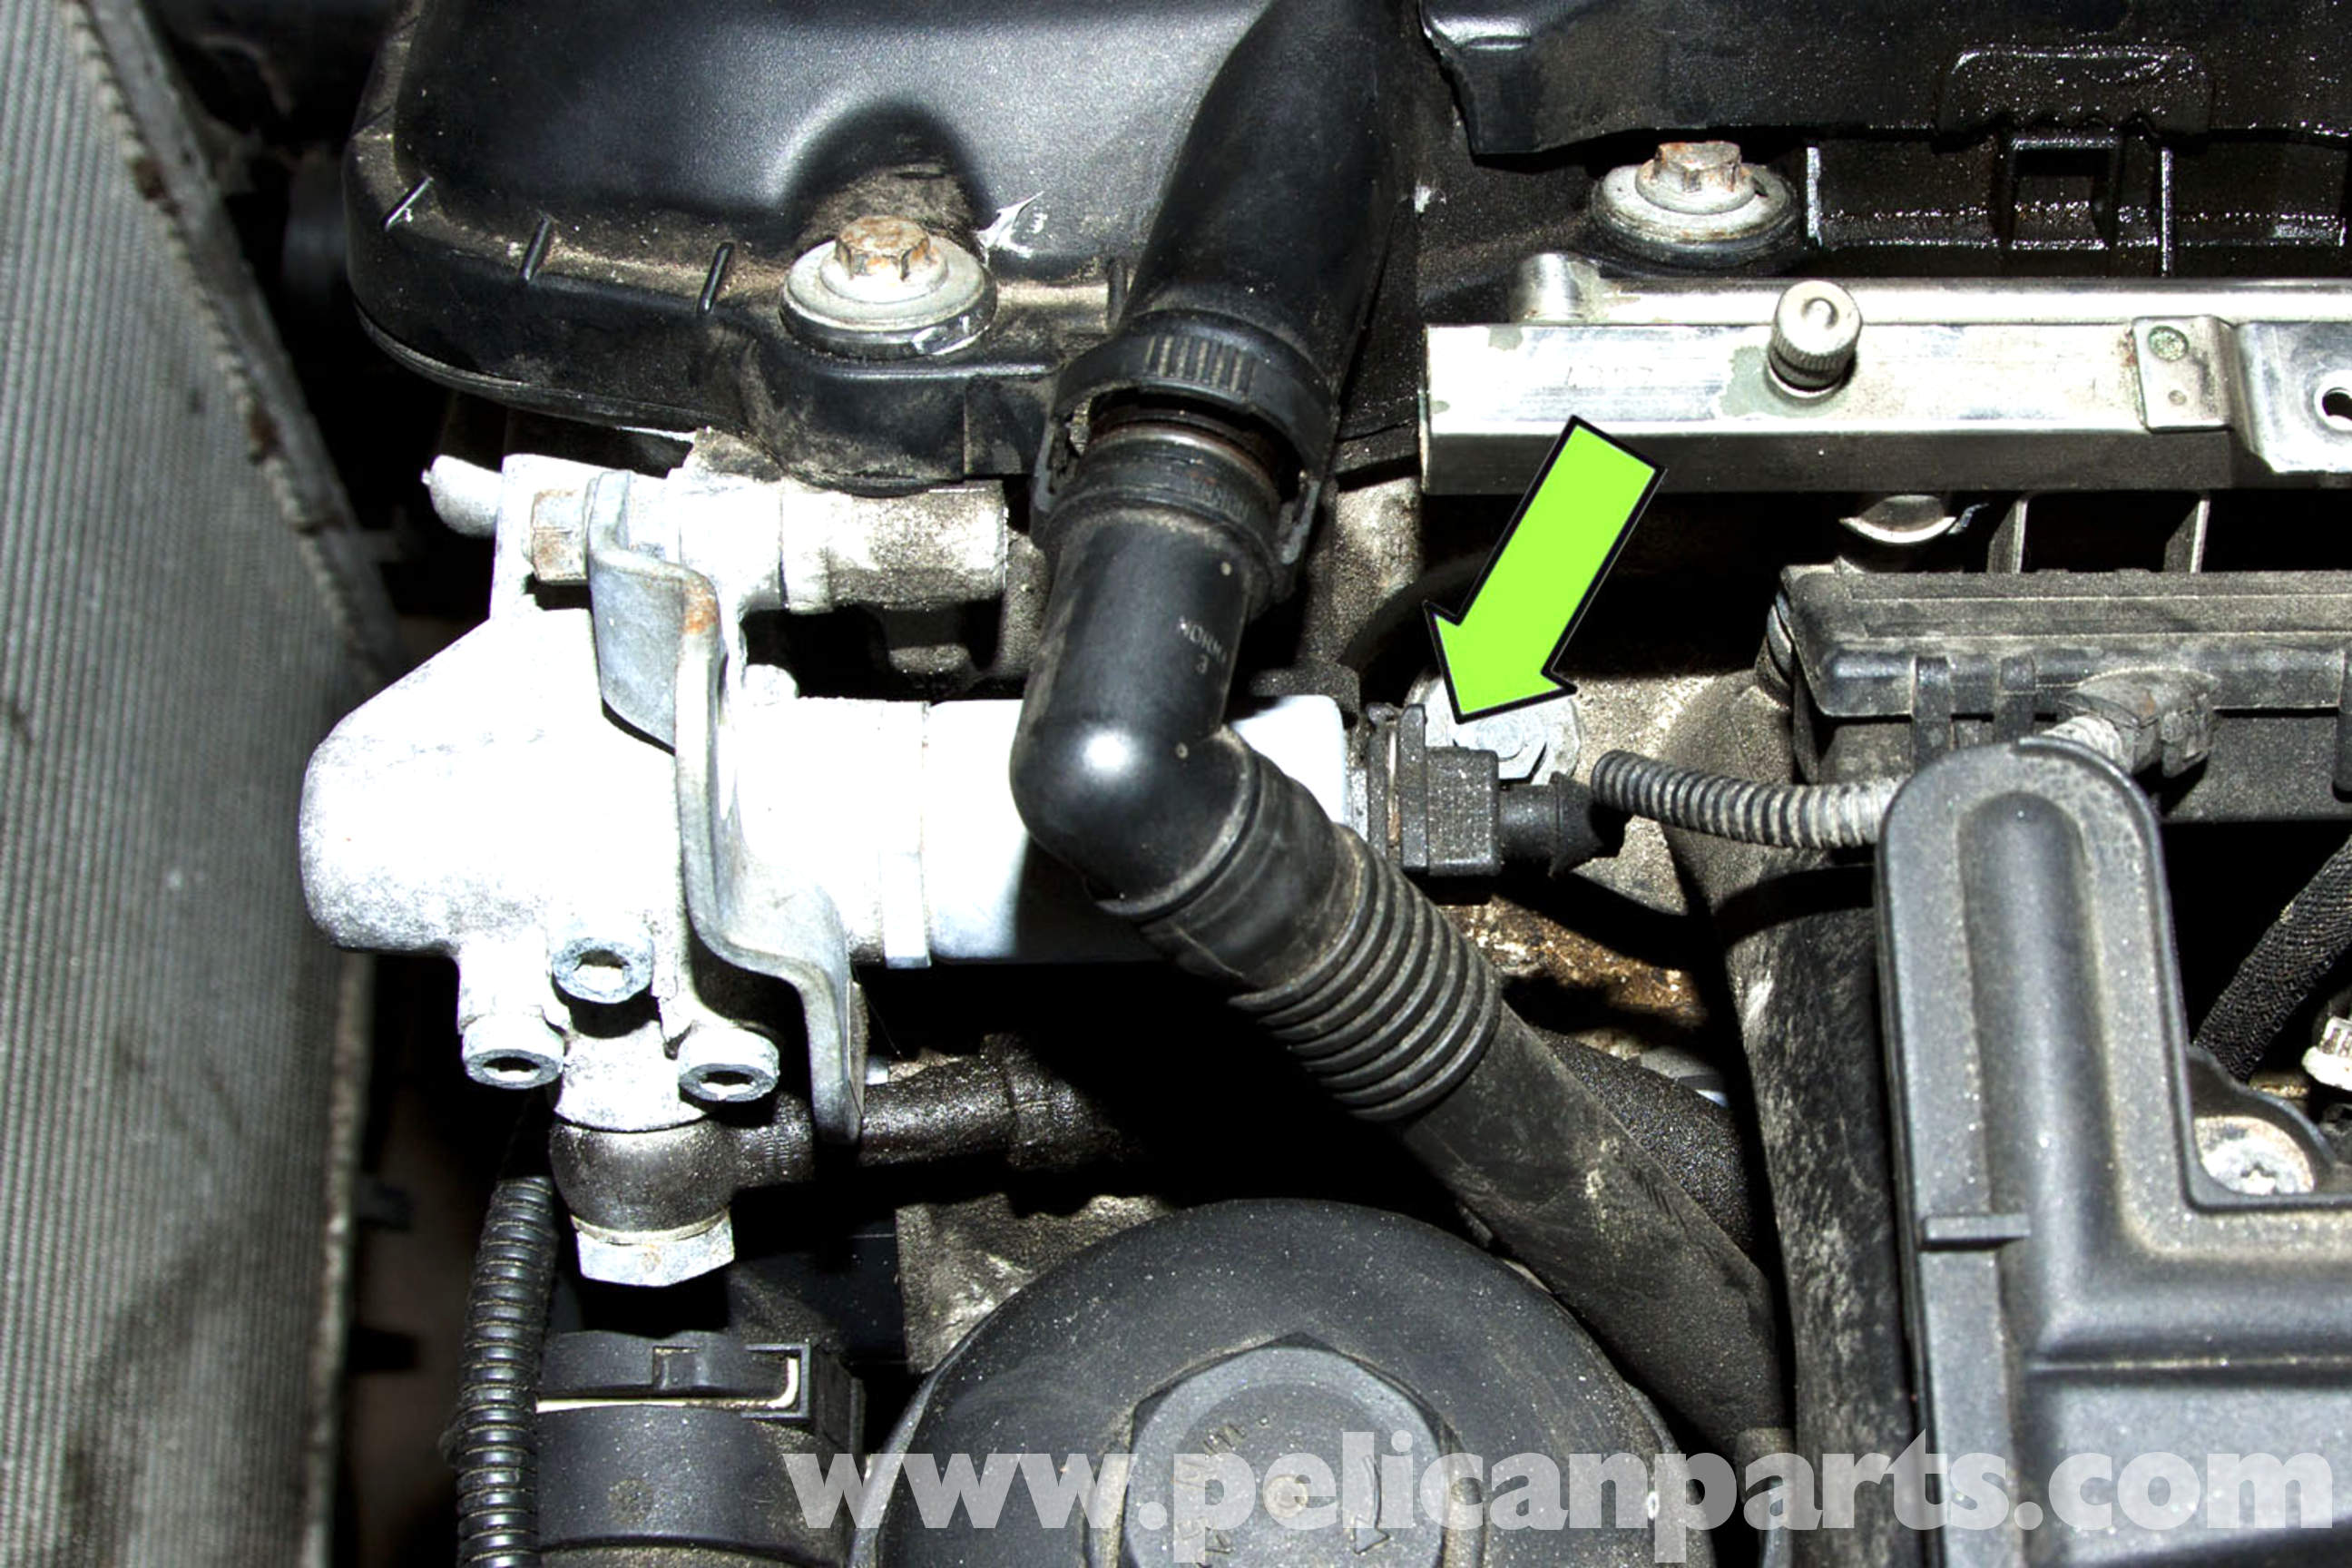 2000 Bmw 528i Engine Parts Location Diagram Trusted Wiring E39 Dsc 5 Series Camshaft Sensor Replacement 1997 2003 525i Rh Pelicanparts Com Motor Of E46 Heater Hoses On 328i